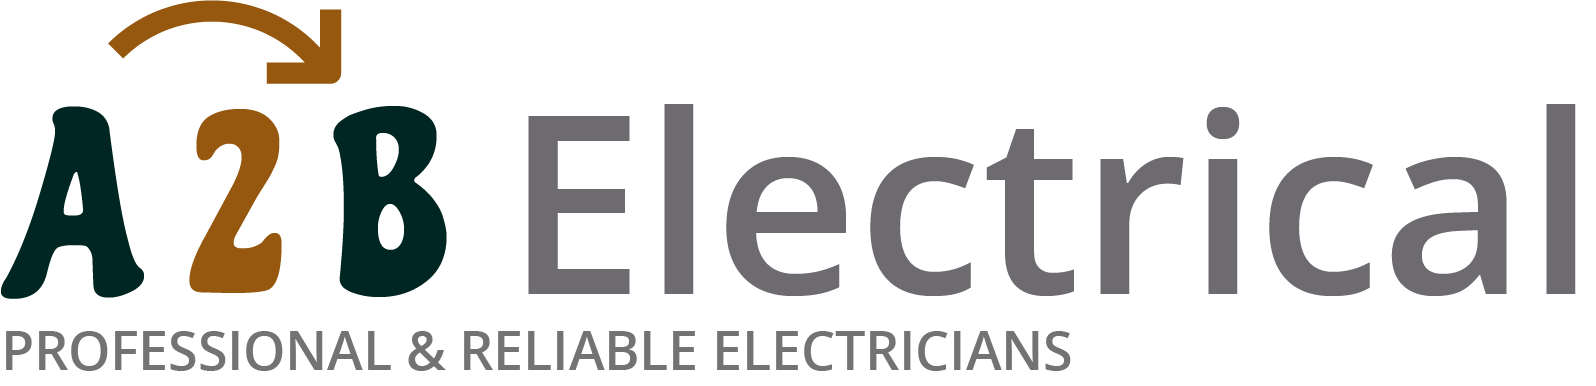 If you have electrical wiring problems in Hampstead, we can provide an electrician to have a look for you.